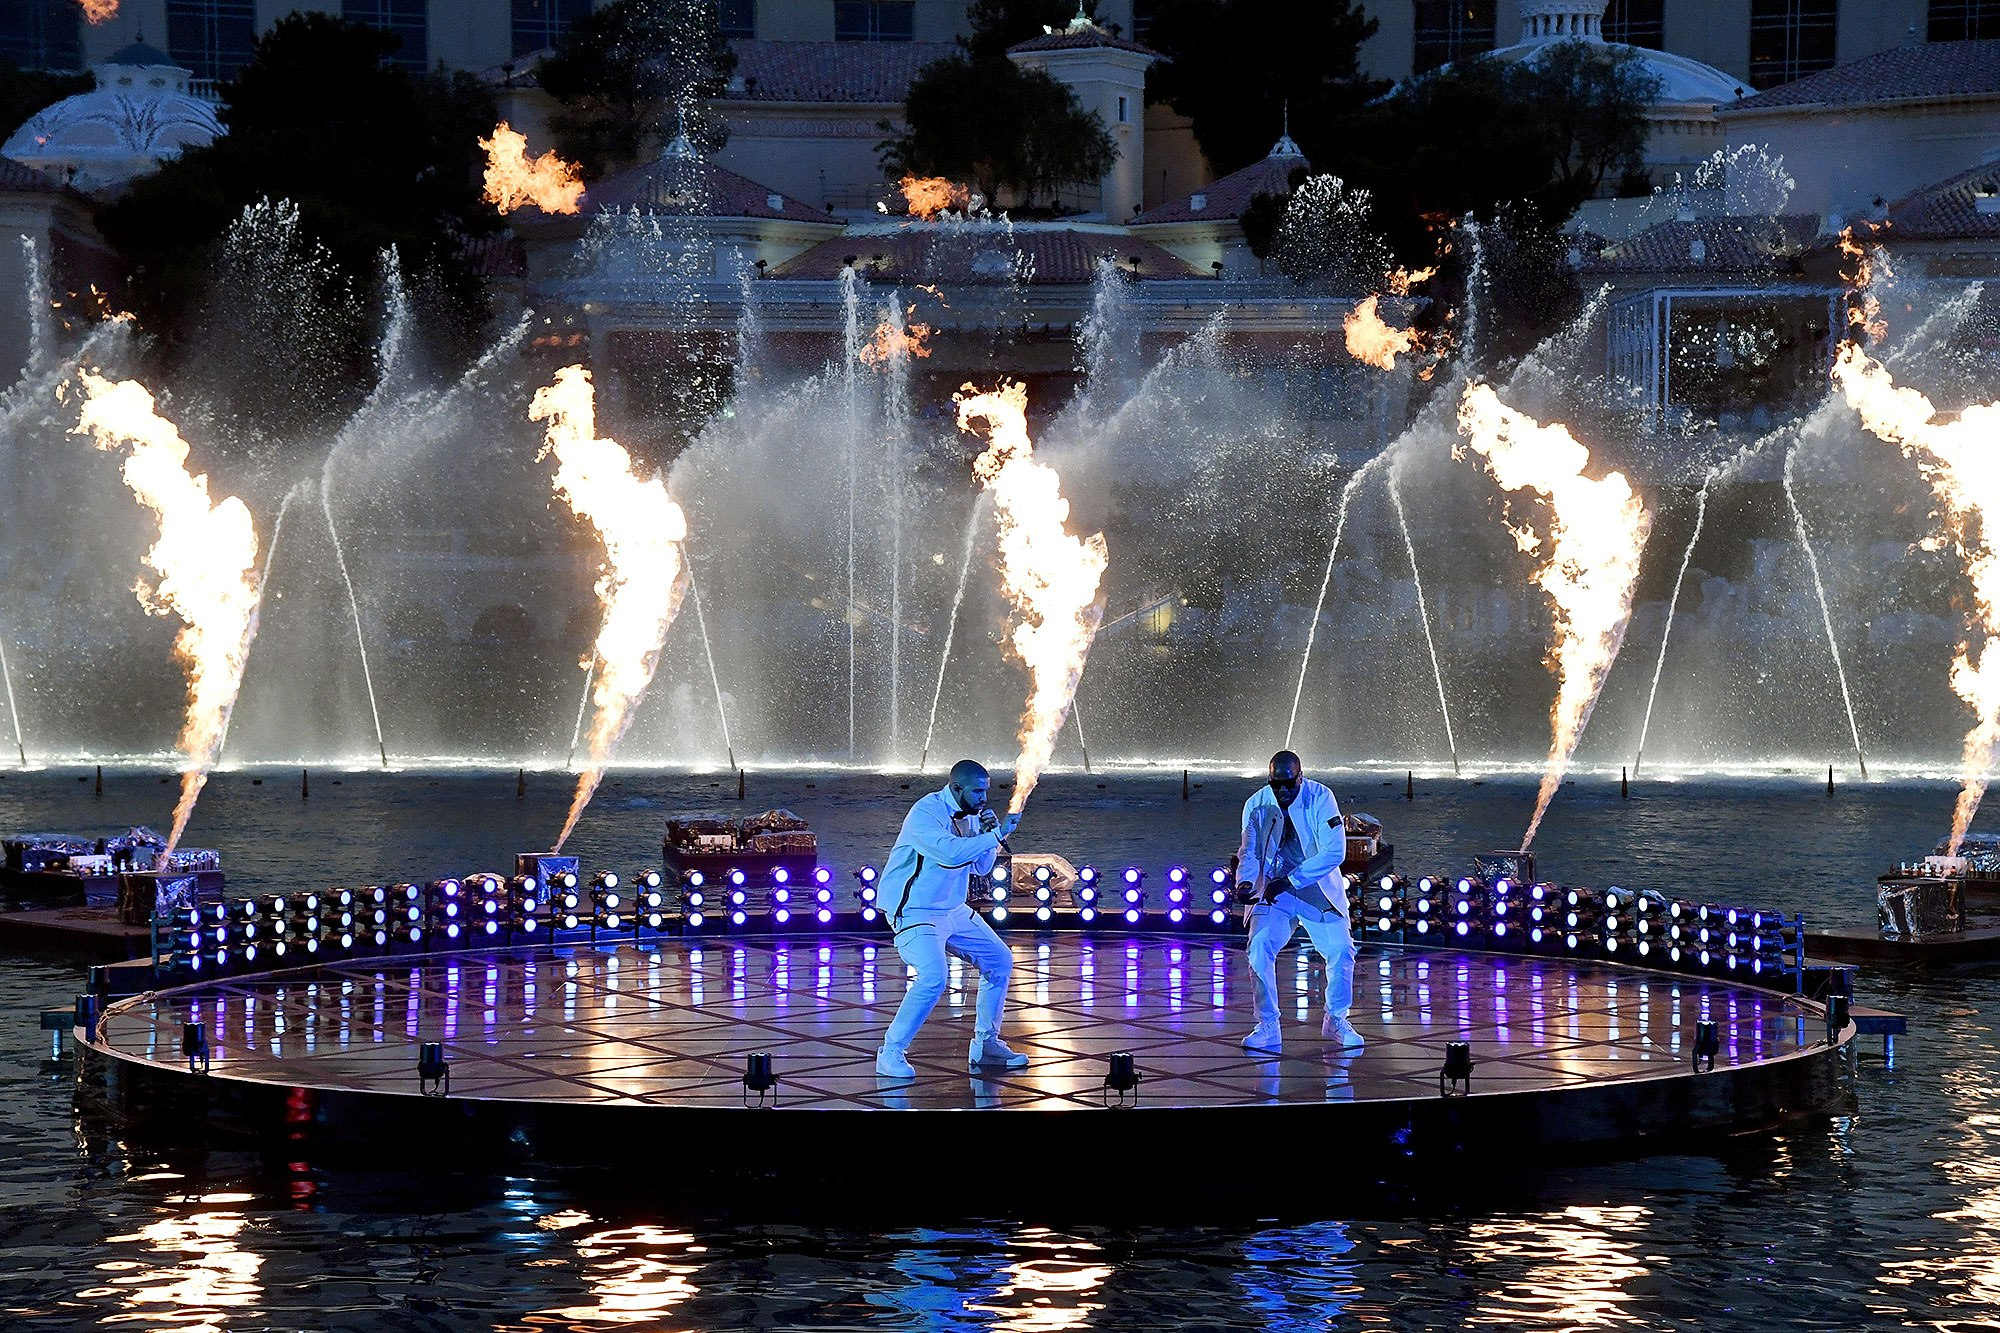 LAS VEGAS, NV - MAY 20: Rappers Drake (L) and Baka perform during the 2017 Billboard Music Awards at The Fountains of Bellagio on May 20, 2017 in Las Vegas, Nevada. (Photo by Ethan Miller/BBMA2017/Getty Images for dcp)